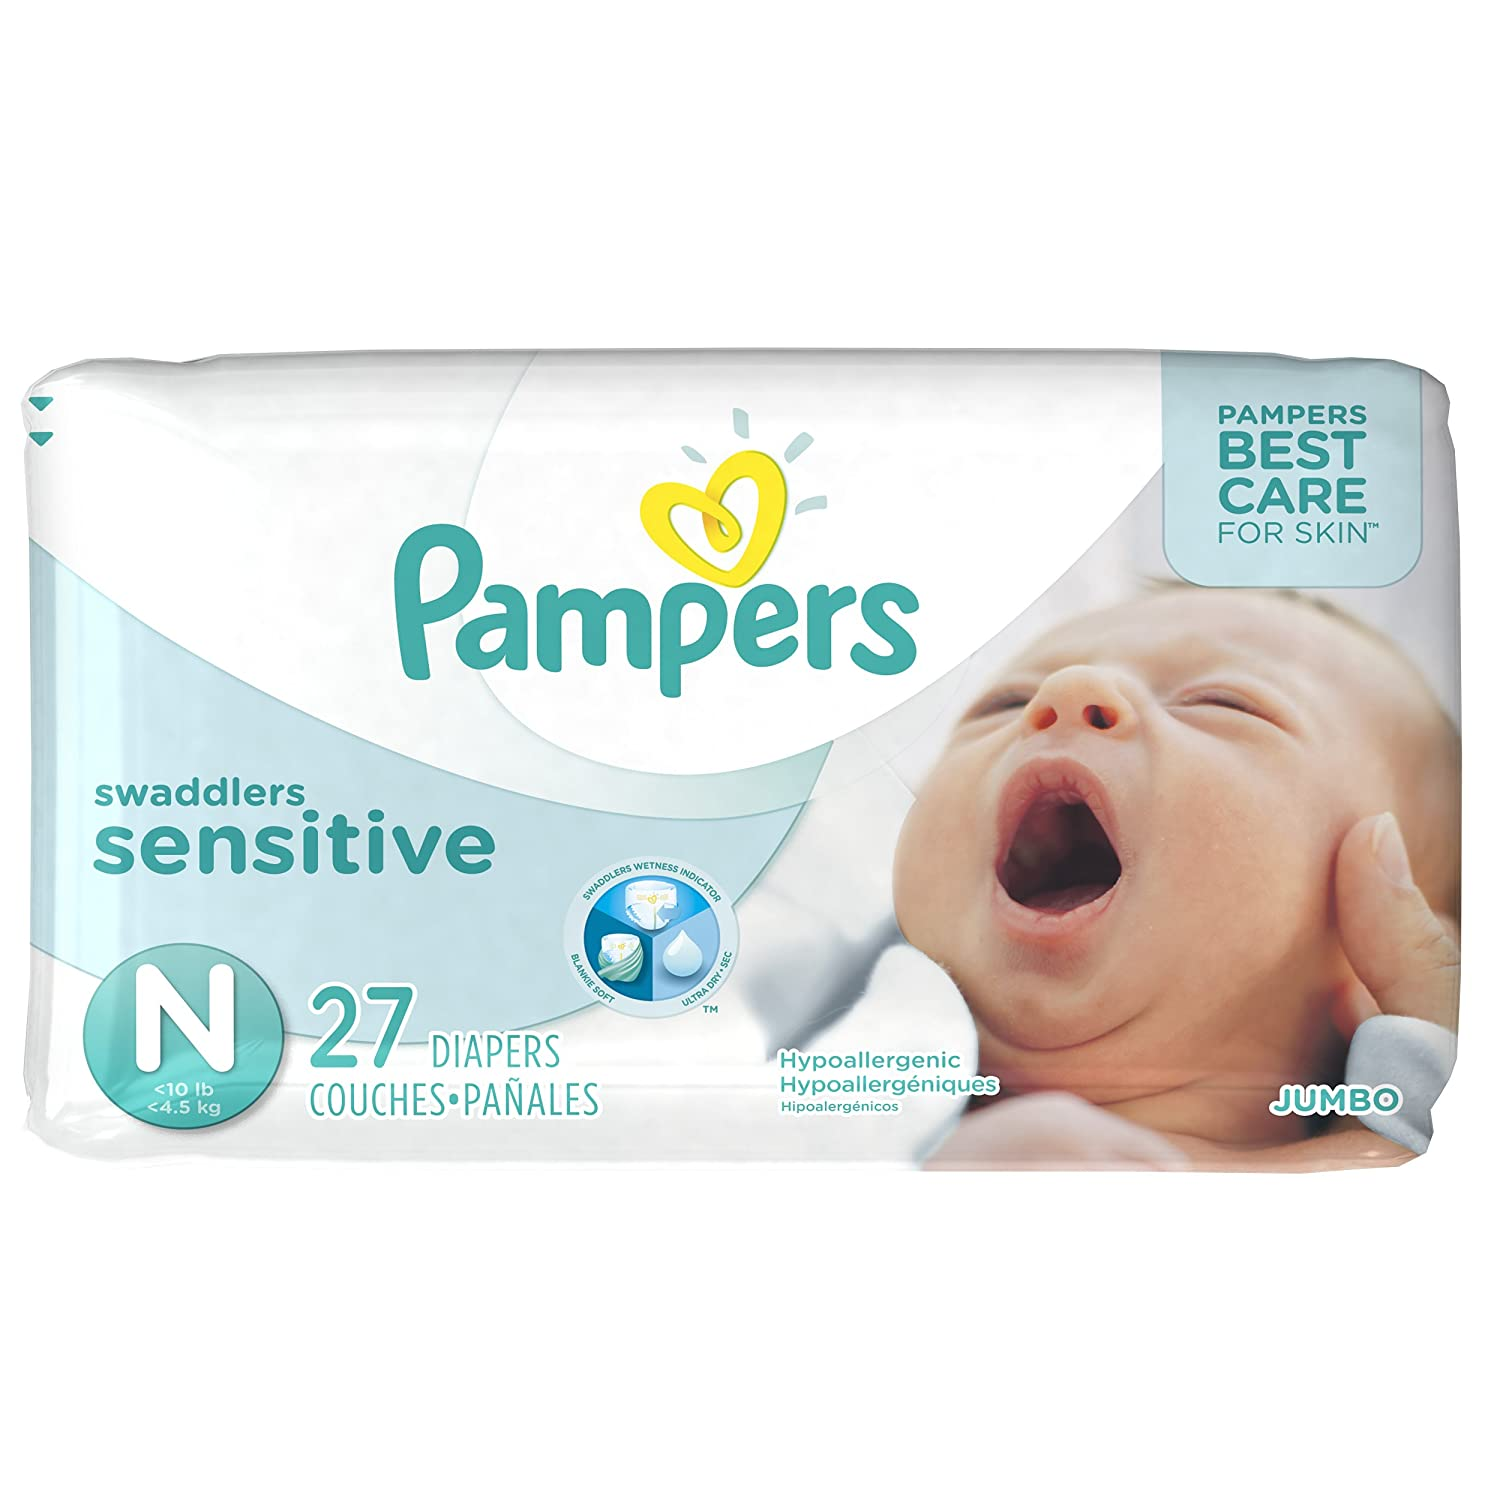 Soft and hypoallergenic, Pampers Swaddlers Sensitive diapers provide the best care for your baby's skin. Made with a quilted design for superior comfort, Sensitive diapers also have a touch of aloe in them to help keep skin healthy looking.